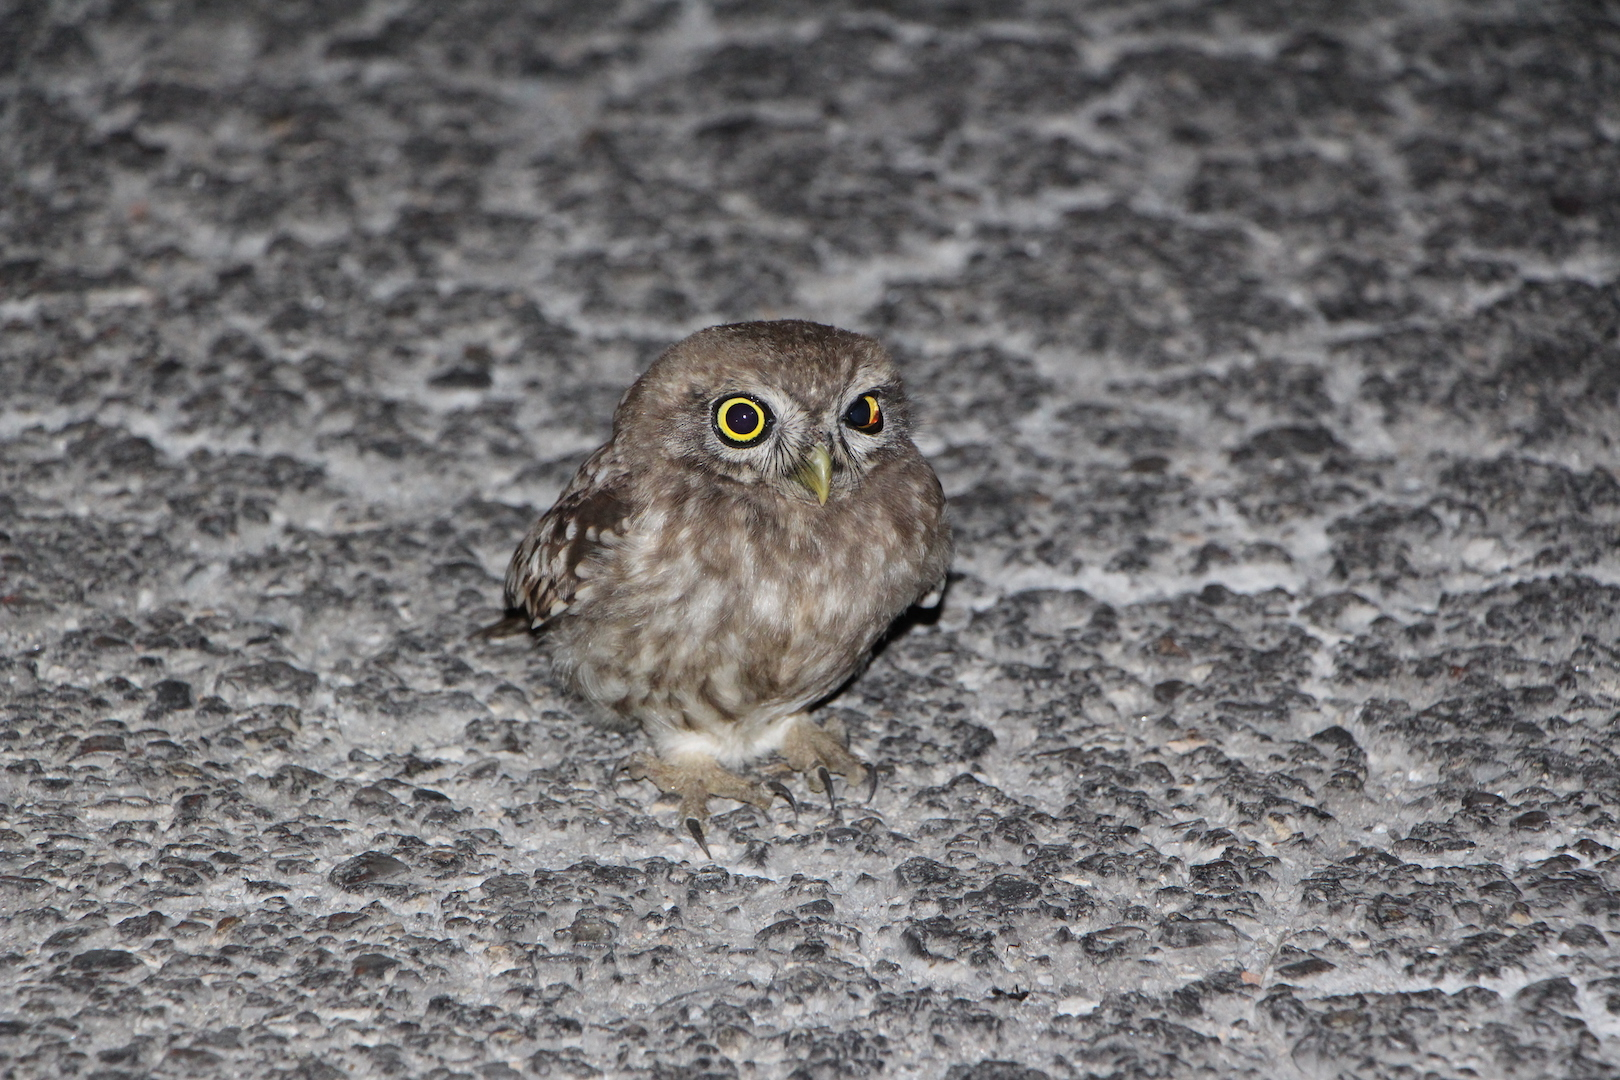 Owl on a road at night (Fauna and Flora)